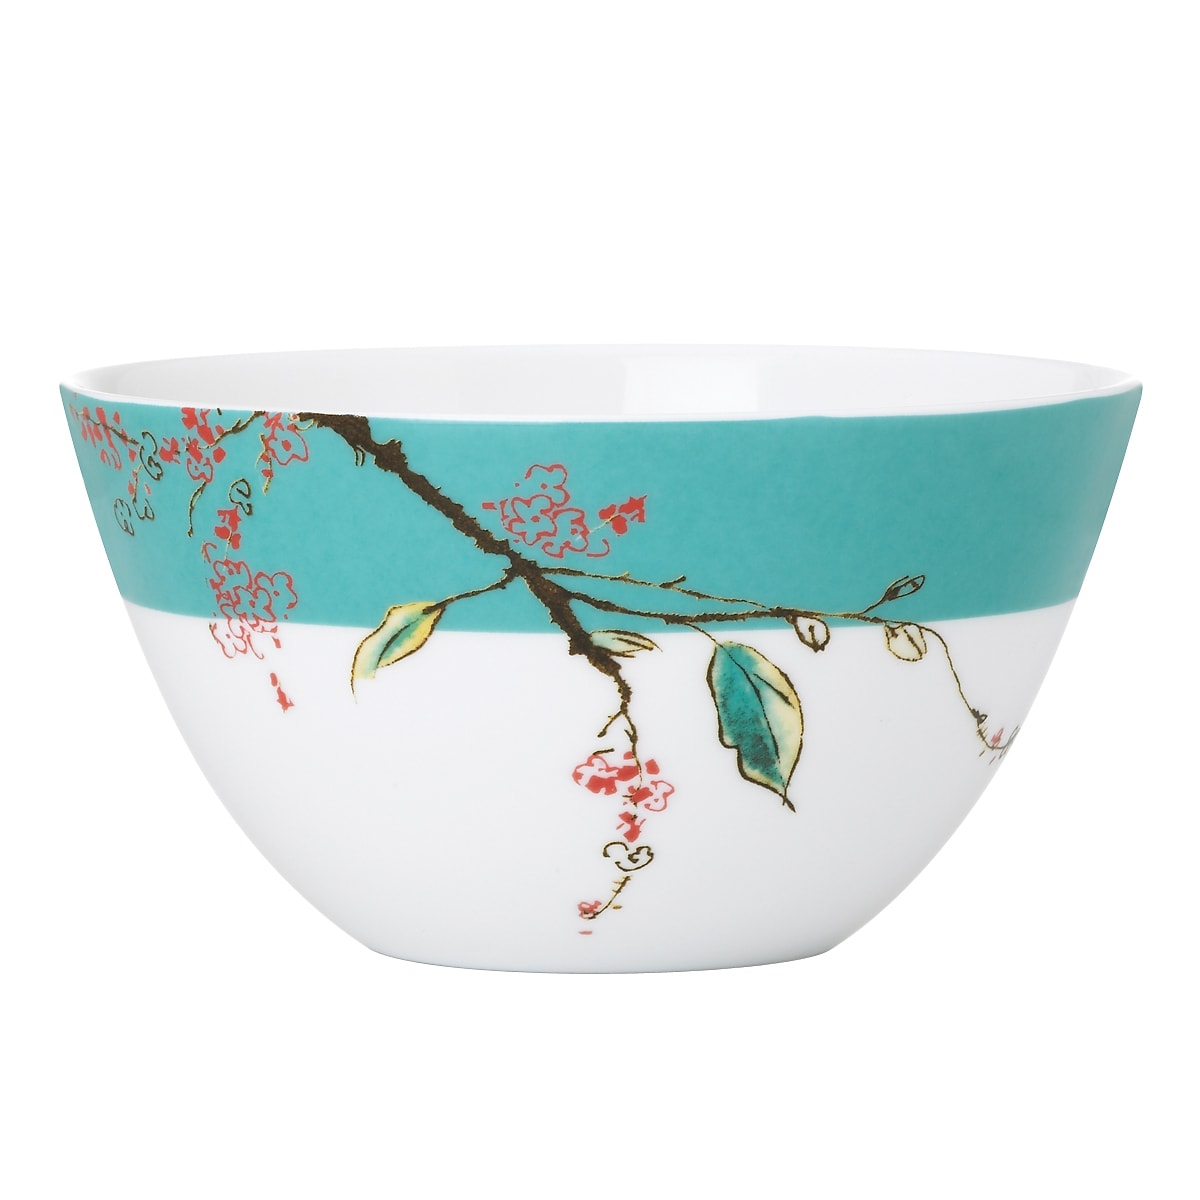 Lenox Chirp Tall' Cereal/ Soup Bowl, Multi (Bone China, F...